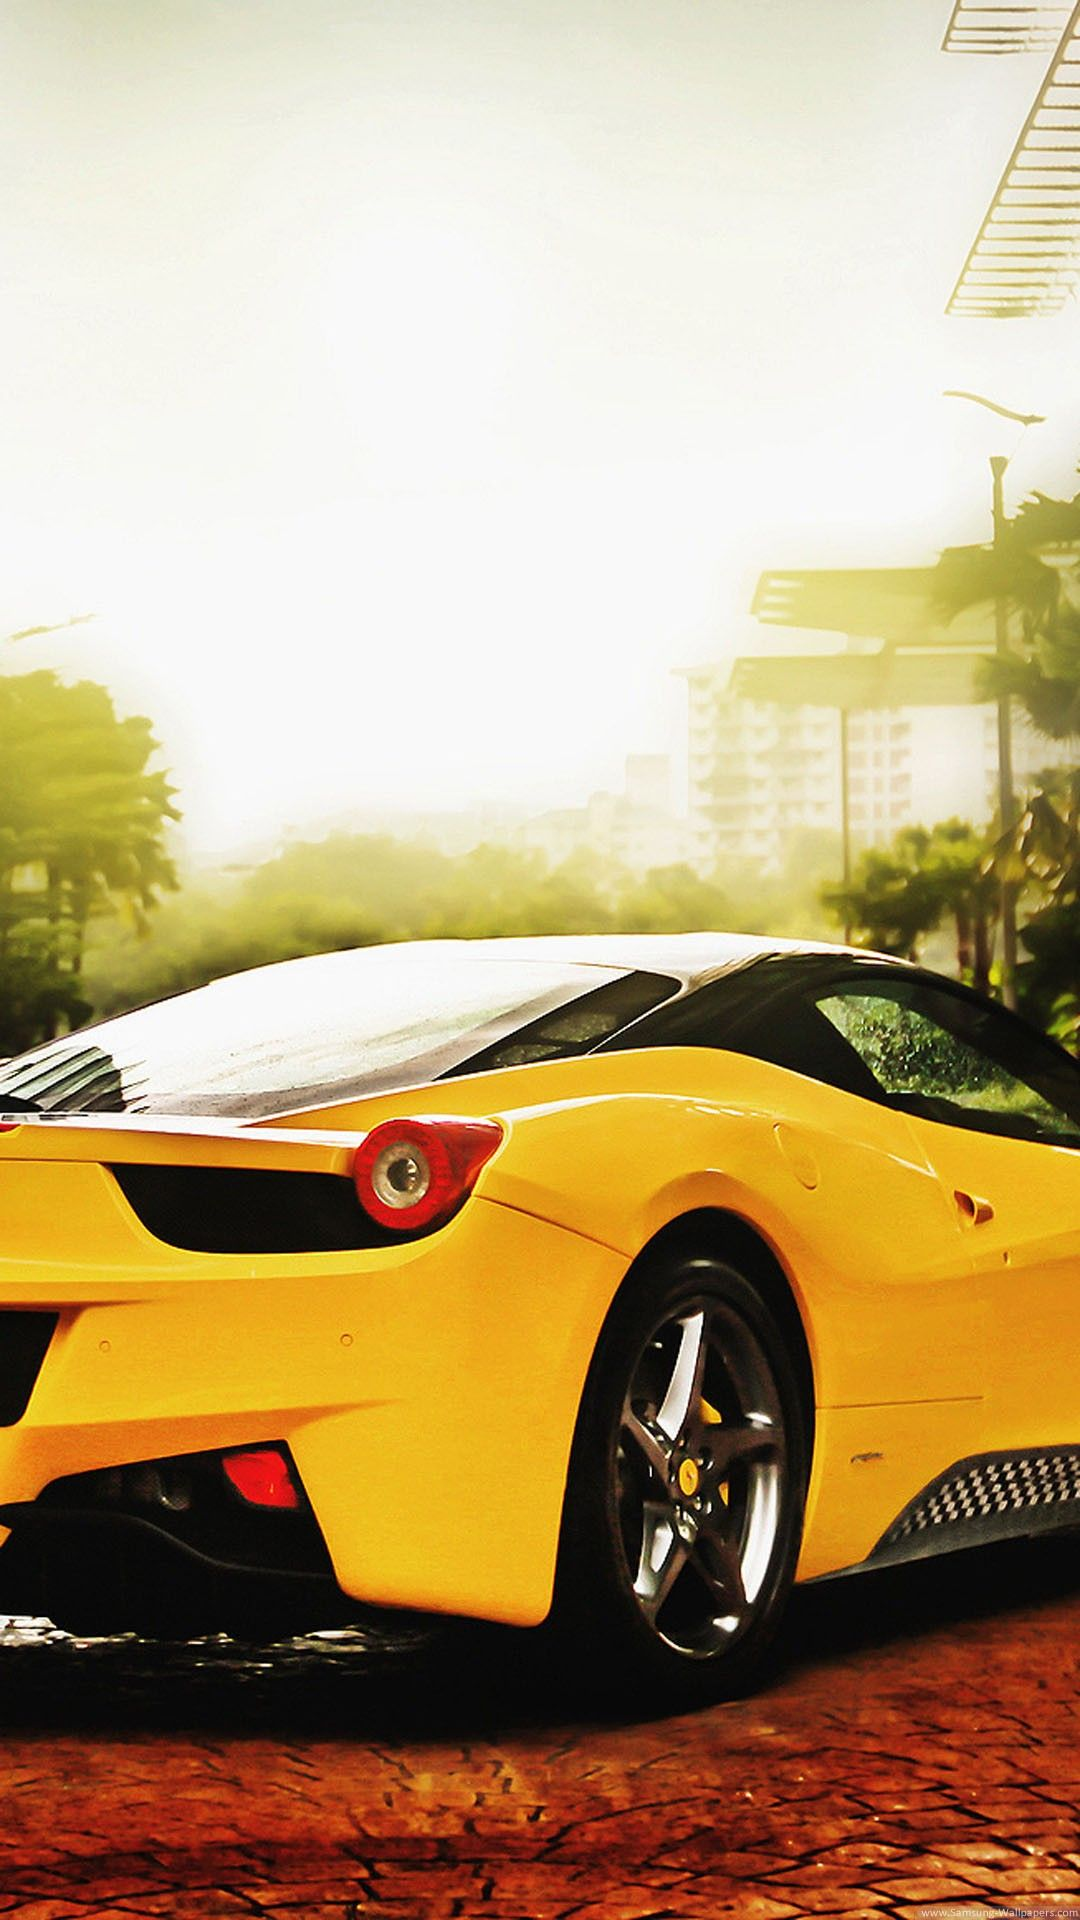 Ferrari 458 Spider Yellow 4k Hd Android And Iphone Wallpaper Background And Lockscreen Check Mo New Car Wallpaper Sports Car Wallpaper Car Wallpaper For Mobile